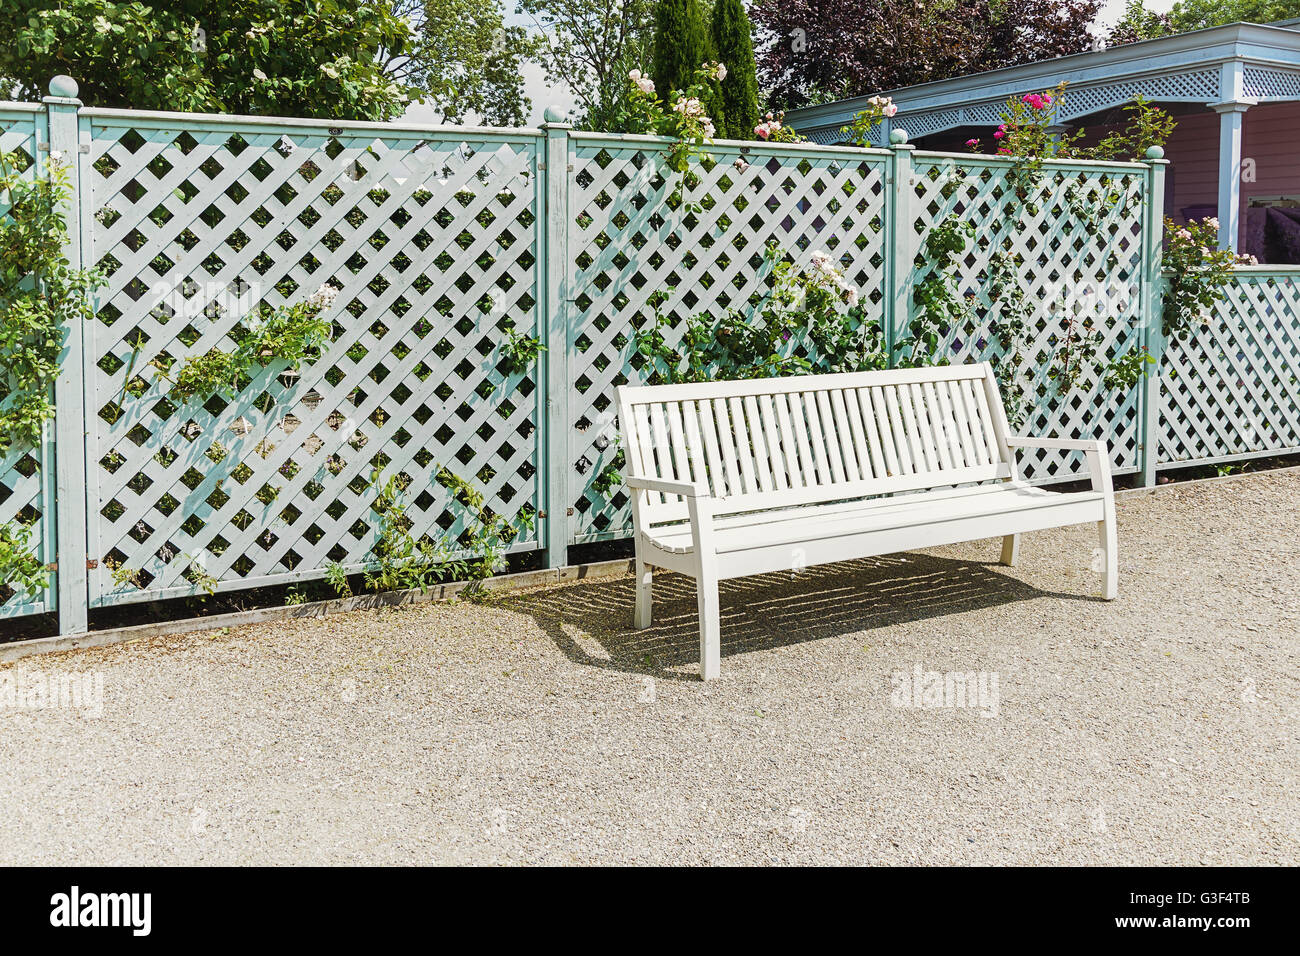 White openwork bench at the fence in the park. - Stock Image